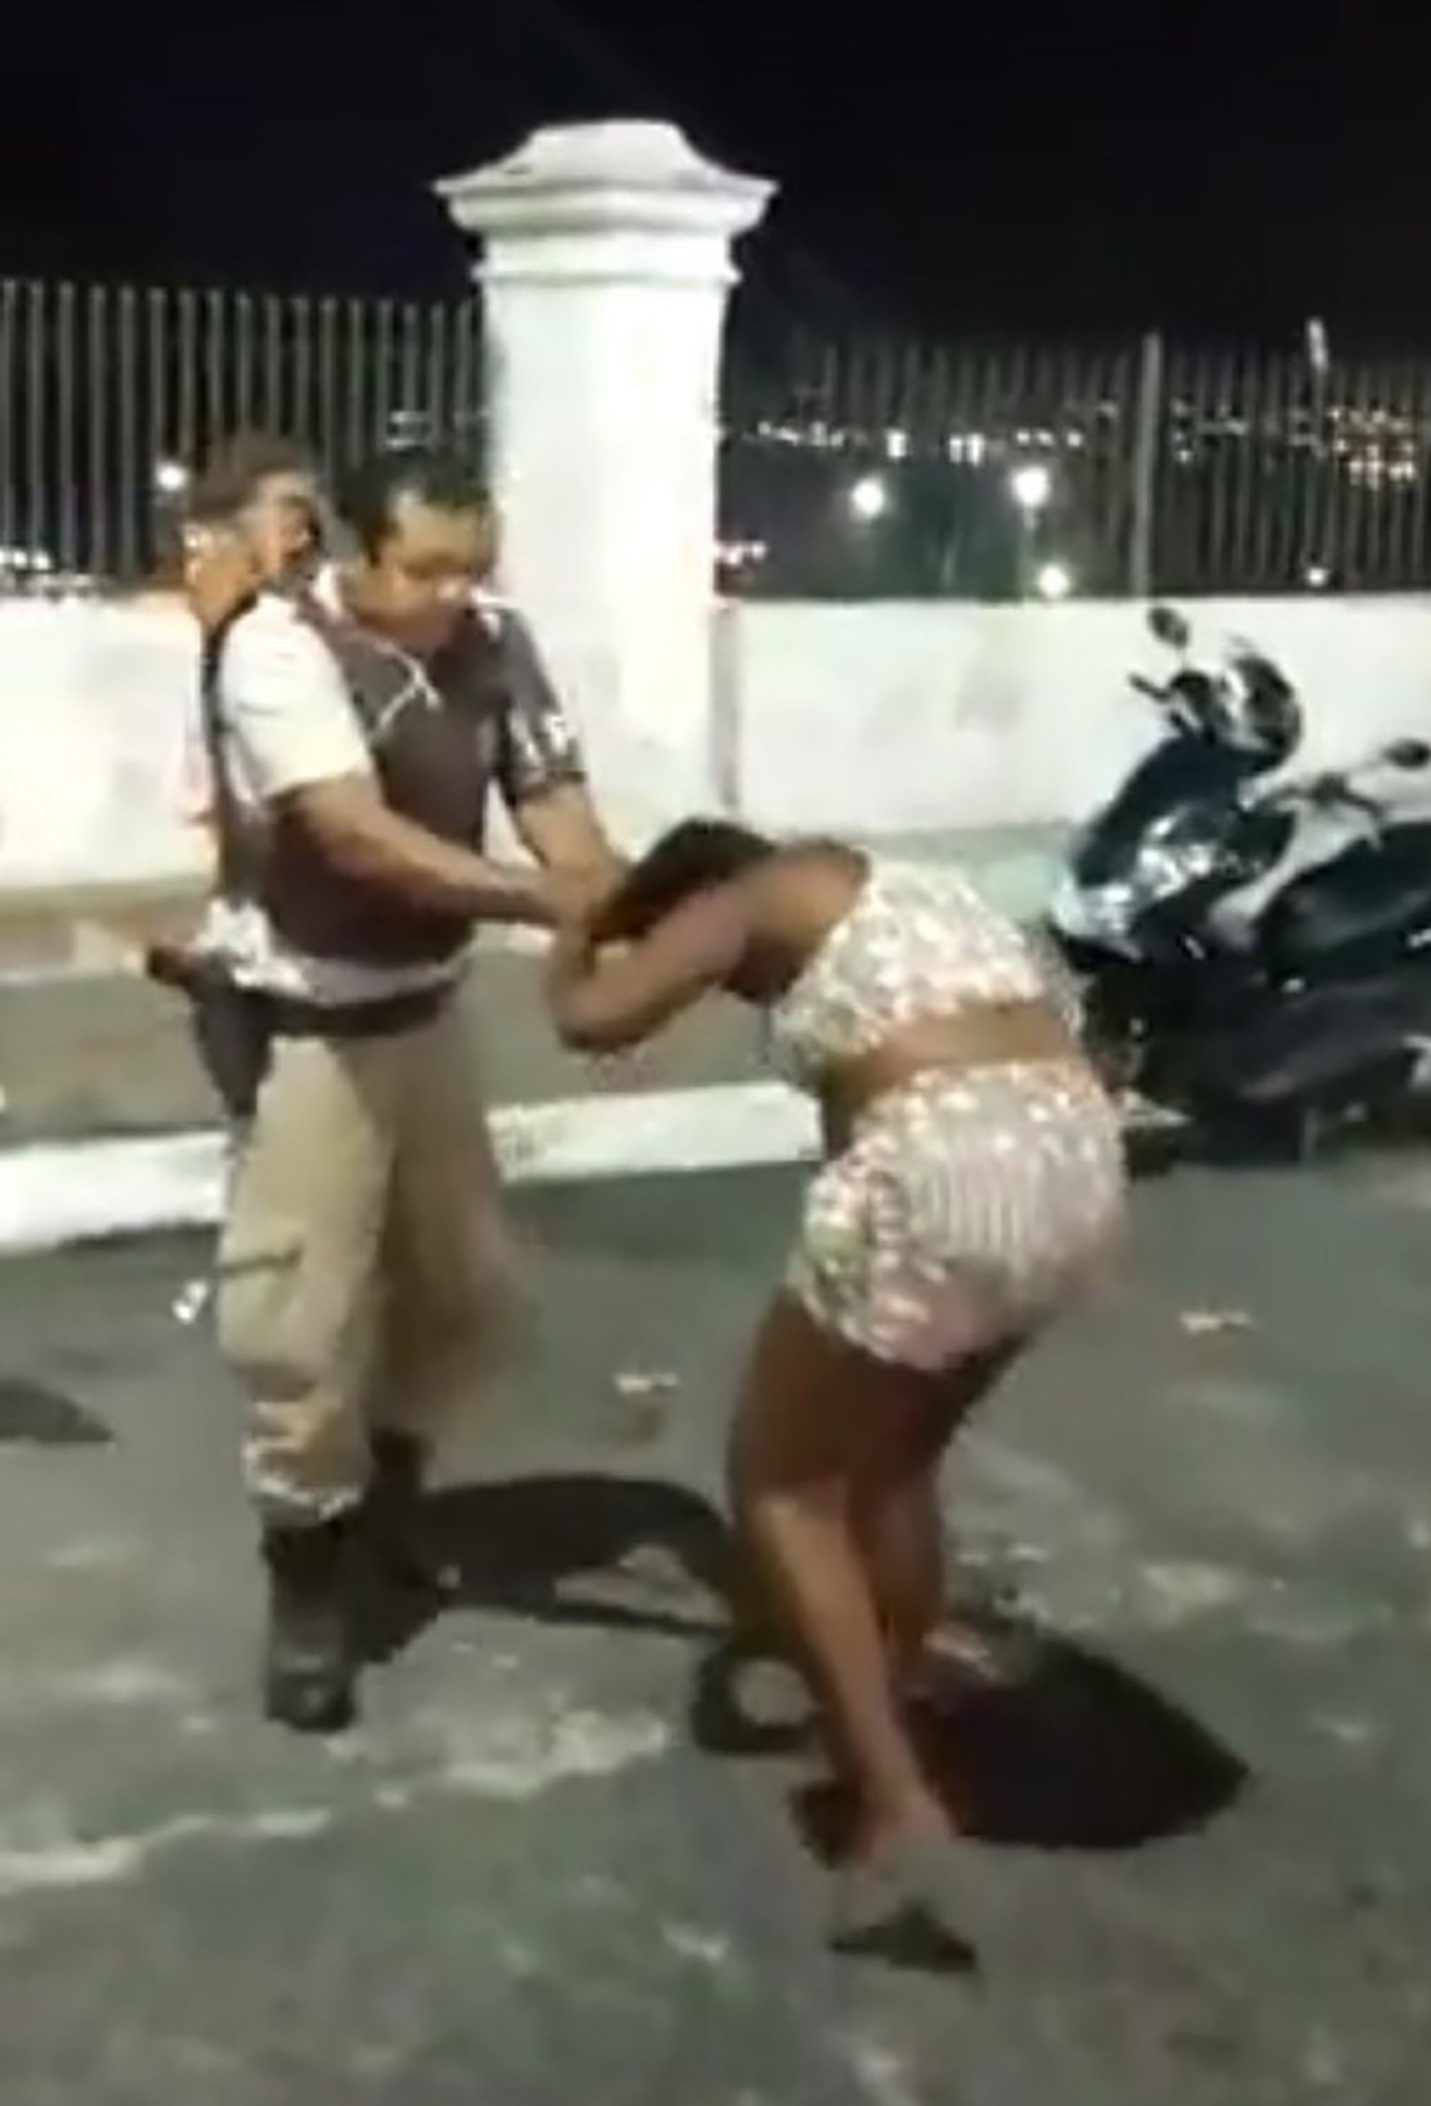 """Pic shows: The soldier drags the woman by the hair and punches her This is the shocking moment a cop brutally drags a pregnant woman by her hair and repeatedly hits her in the face in front of a crowd of onlookers. The startling scenes were filmed in the Santo Antonio Alem do Carmo area of the city of Salvador, in the Brazilian state of Bahia. In the video, the woman can be heard shouting at the cops who are arresting a man at the back of their patrol car. One of the cops then walks up to the crowd of onlookers and grabs the woman by her hair and begins slamming his fist into her face. He then then drags the woman away from the crowd by her hair as an onlooker can be heard shouting """"Calm down man! She is pregnant!"""". The suspect who was being arrested can be seen struggling with officers in the background as the crowd tries to drag the woman away from the aggressive cop. The officer then lands another punch on the pregnant woman???s face before onlookers manage to drag her to safety. The woman, who does not wish to be named, confirmed she is three months pregnant. She told reporters: """"The officer who hit my face was not with the same patrol as those who beat the boy (getting arrested). We started shouting because there were a lot of people, a lot of families, we shouted that they were cowards and they were going to kill the boy. """"He did not say anything to me, he did not address me, he came and hit me and people were asking him to let me go. He hit me really hard in the face, people were shouting that I was pregnant and he continued attacking me."""" She said that nobody knew the boy who was being arrested. The Military Police confirmed they were investigating the video and the behaviour of the officers during the arrest. A statement read: """"The images are being analysed by the Commander and the officers, who clearly overstepped the mark, have been removed from operational activities."""" The officer who hit the woman has been suspended and is seeing a psychol"""